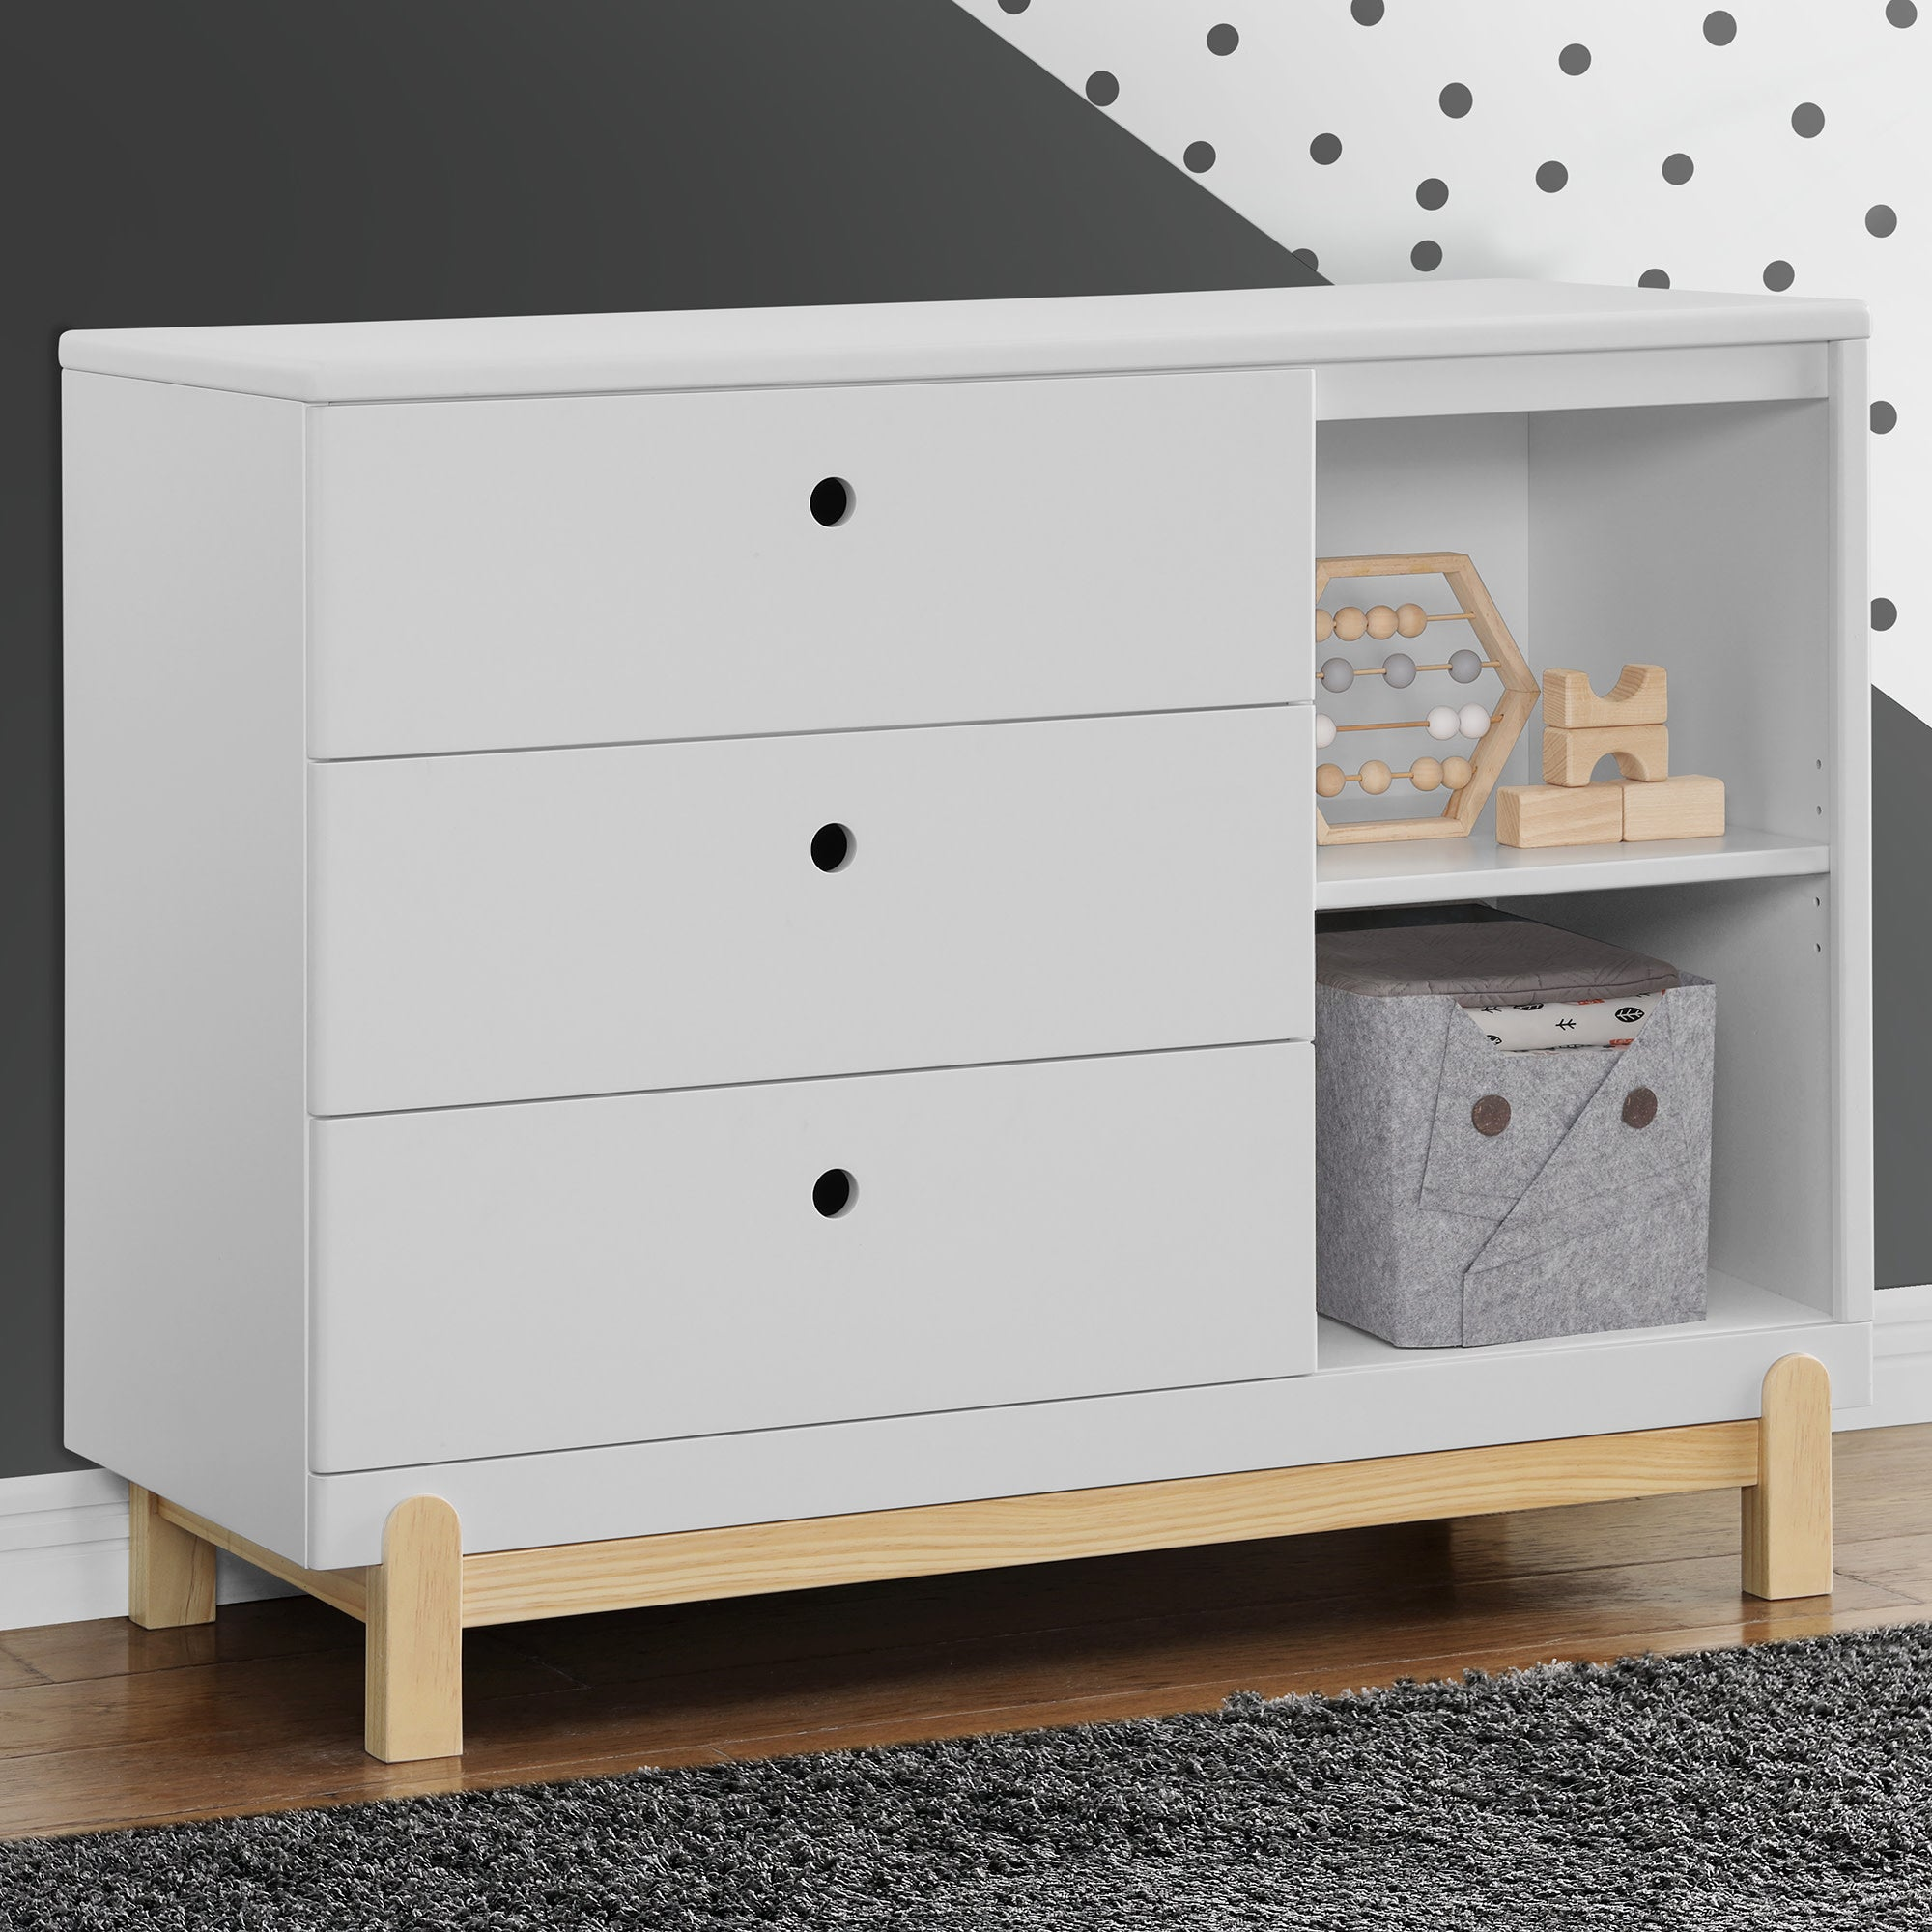 Poppy 3 Drawer Dresser with Cubbies